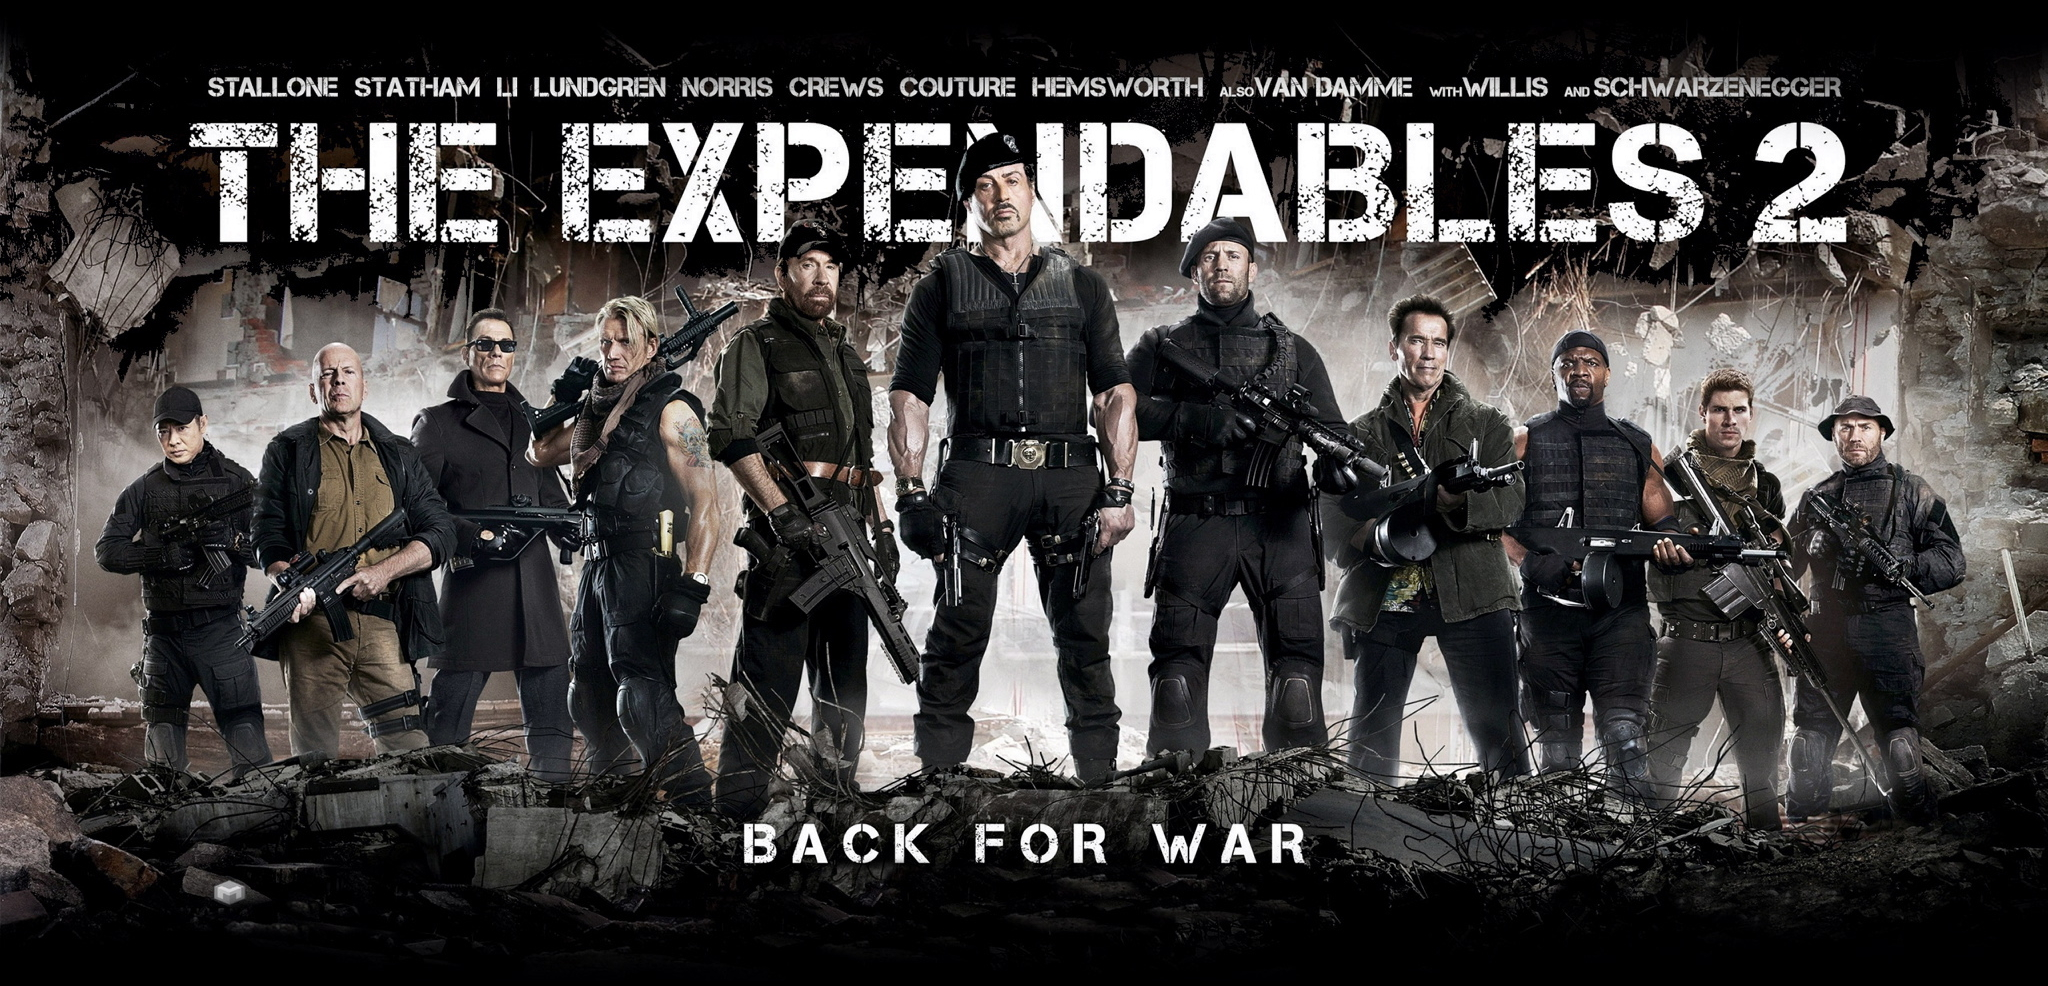 film review: the expendables 3